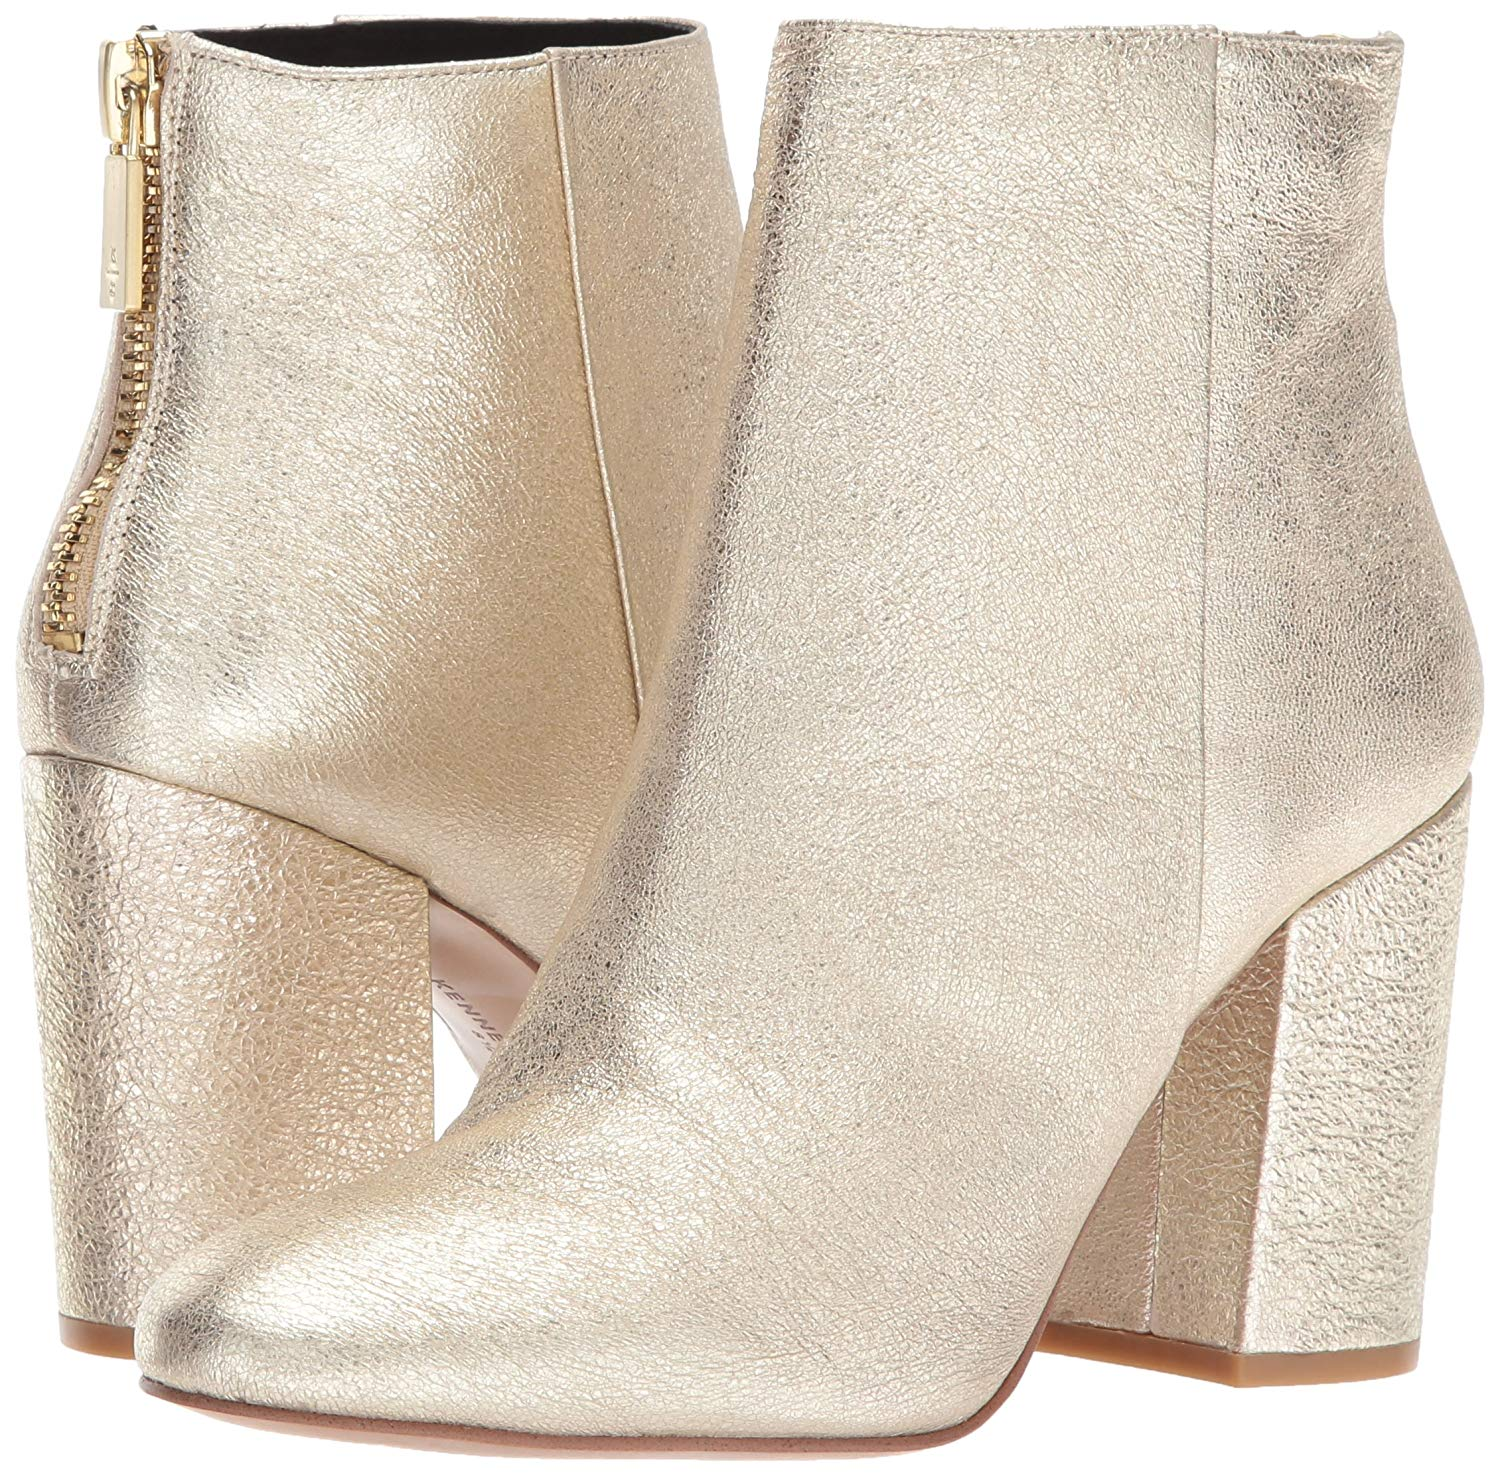 Kenneth Cole New York Womens Caylee Leather Leather Leather Almond Toe Ankle Fashion Boots 223cf3